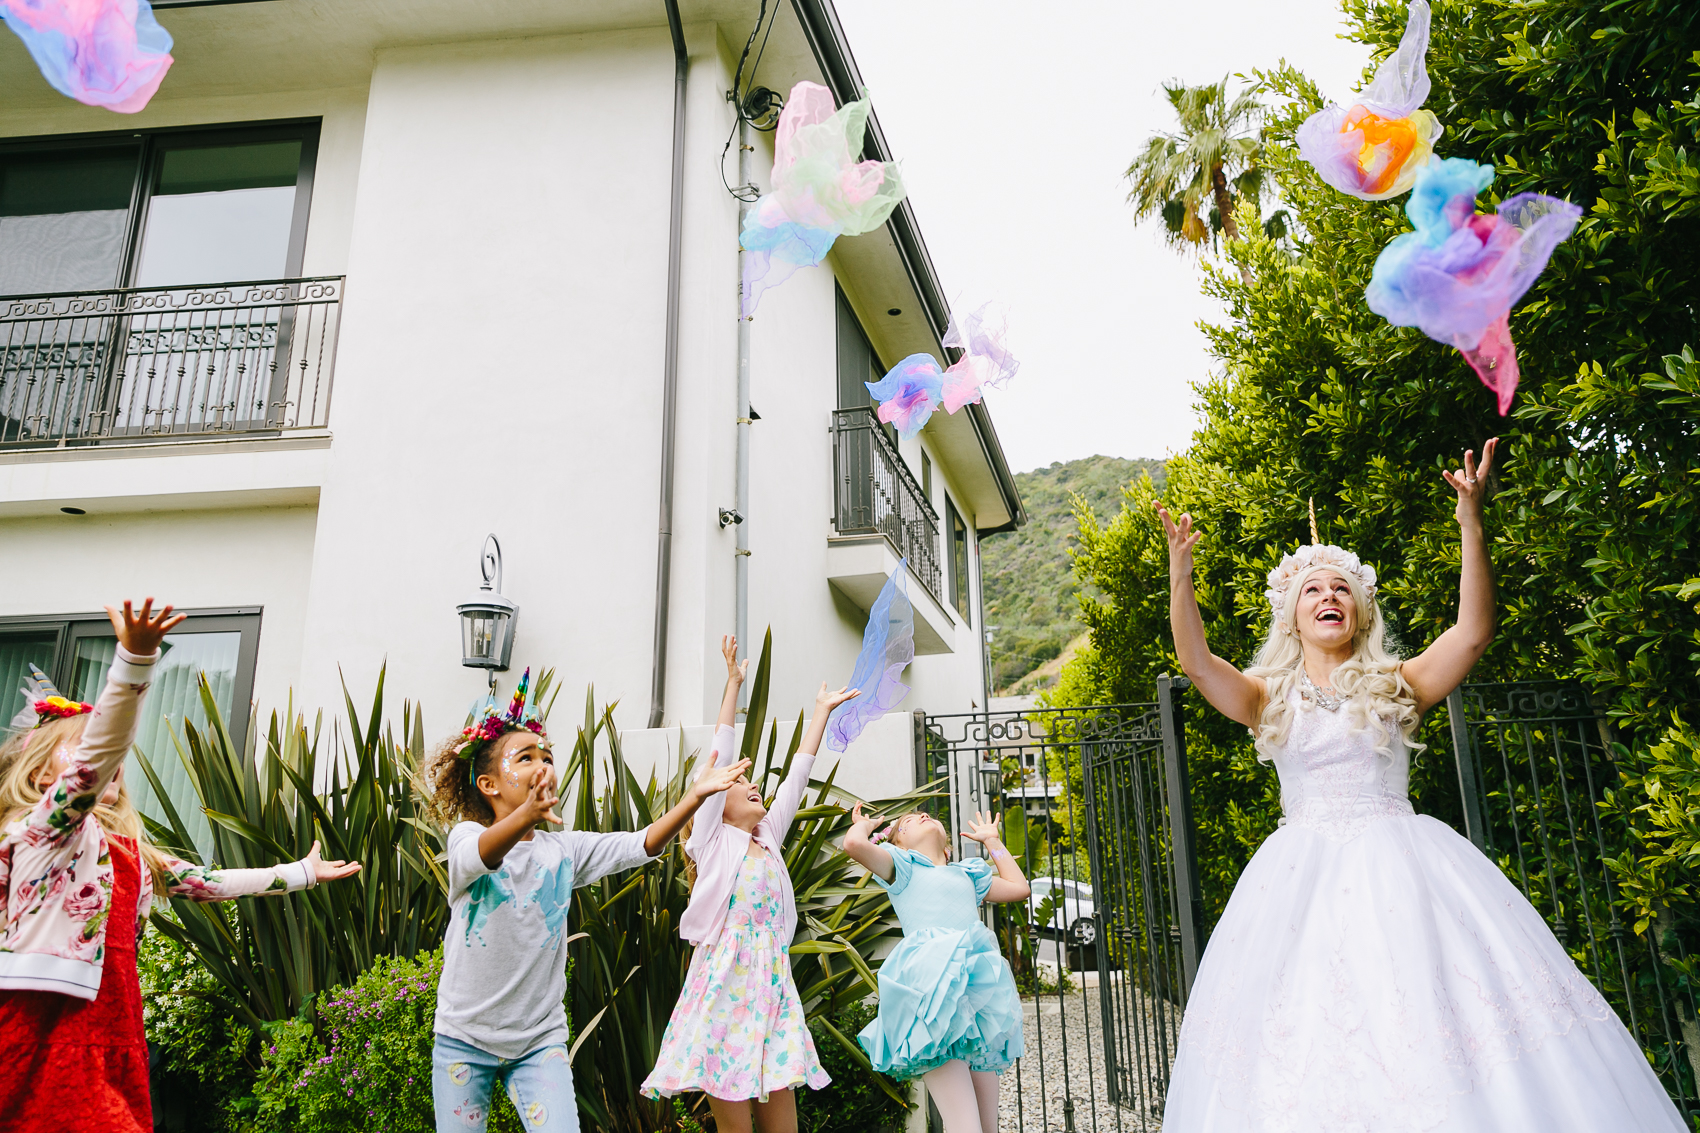 Los_Angeles_Family_Photographer_Luxury_Childrens_Party_Beverly_Hills_Unicorn_Birthday_Party-1237.jpg